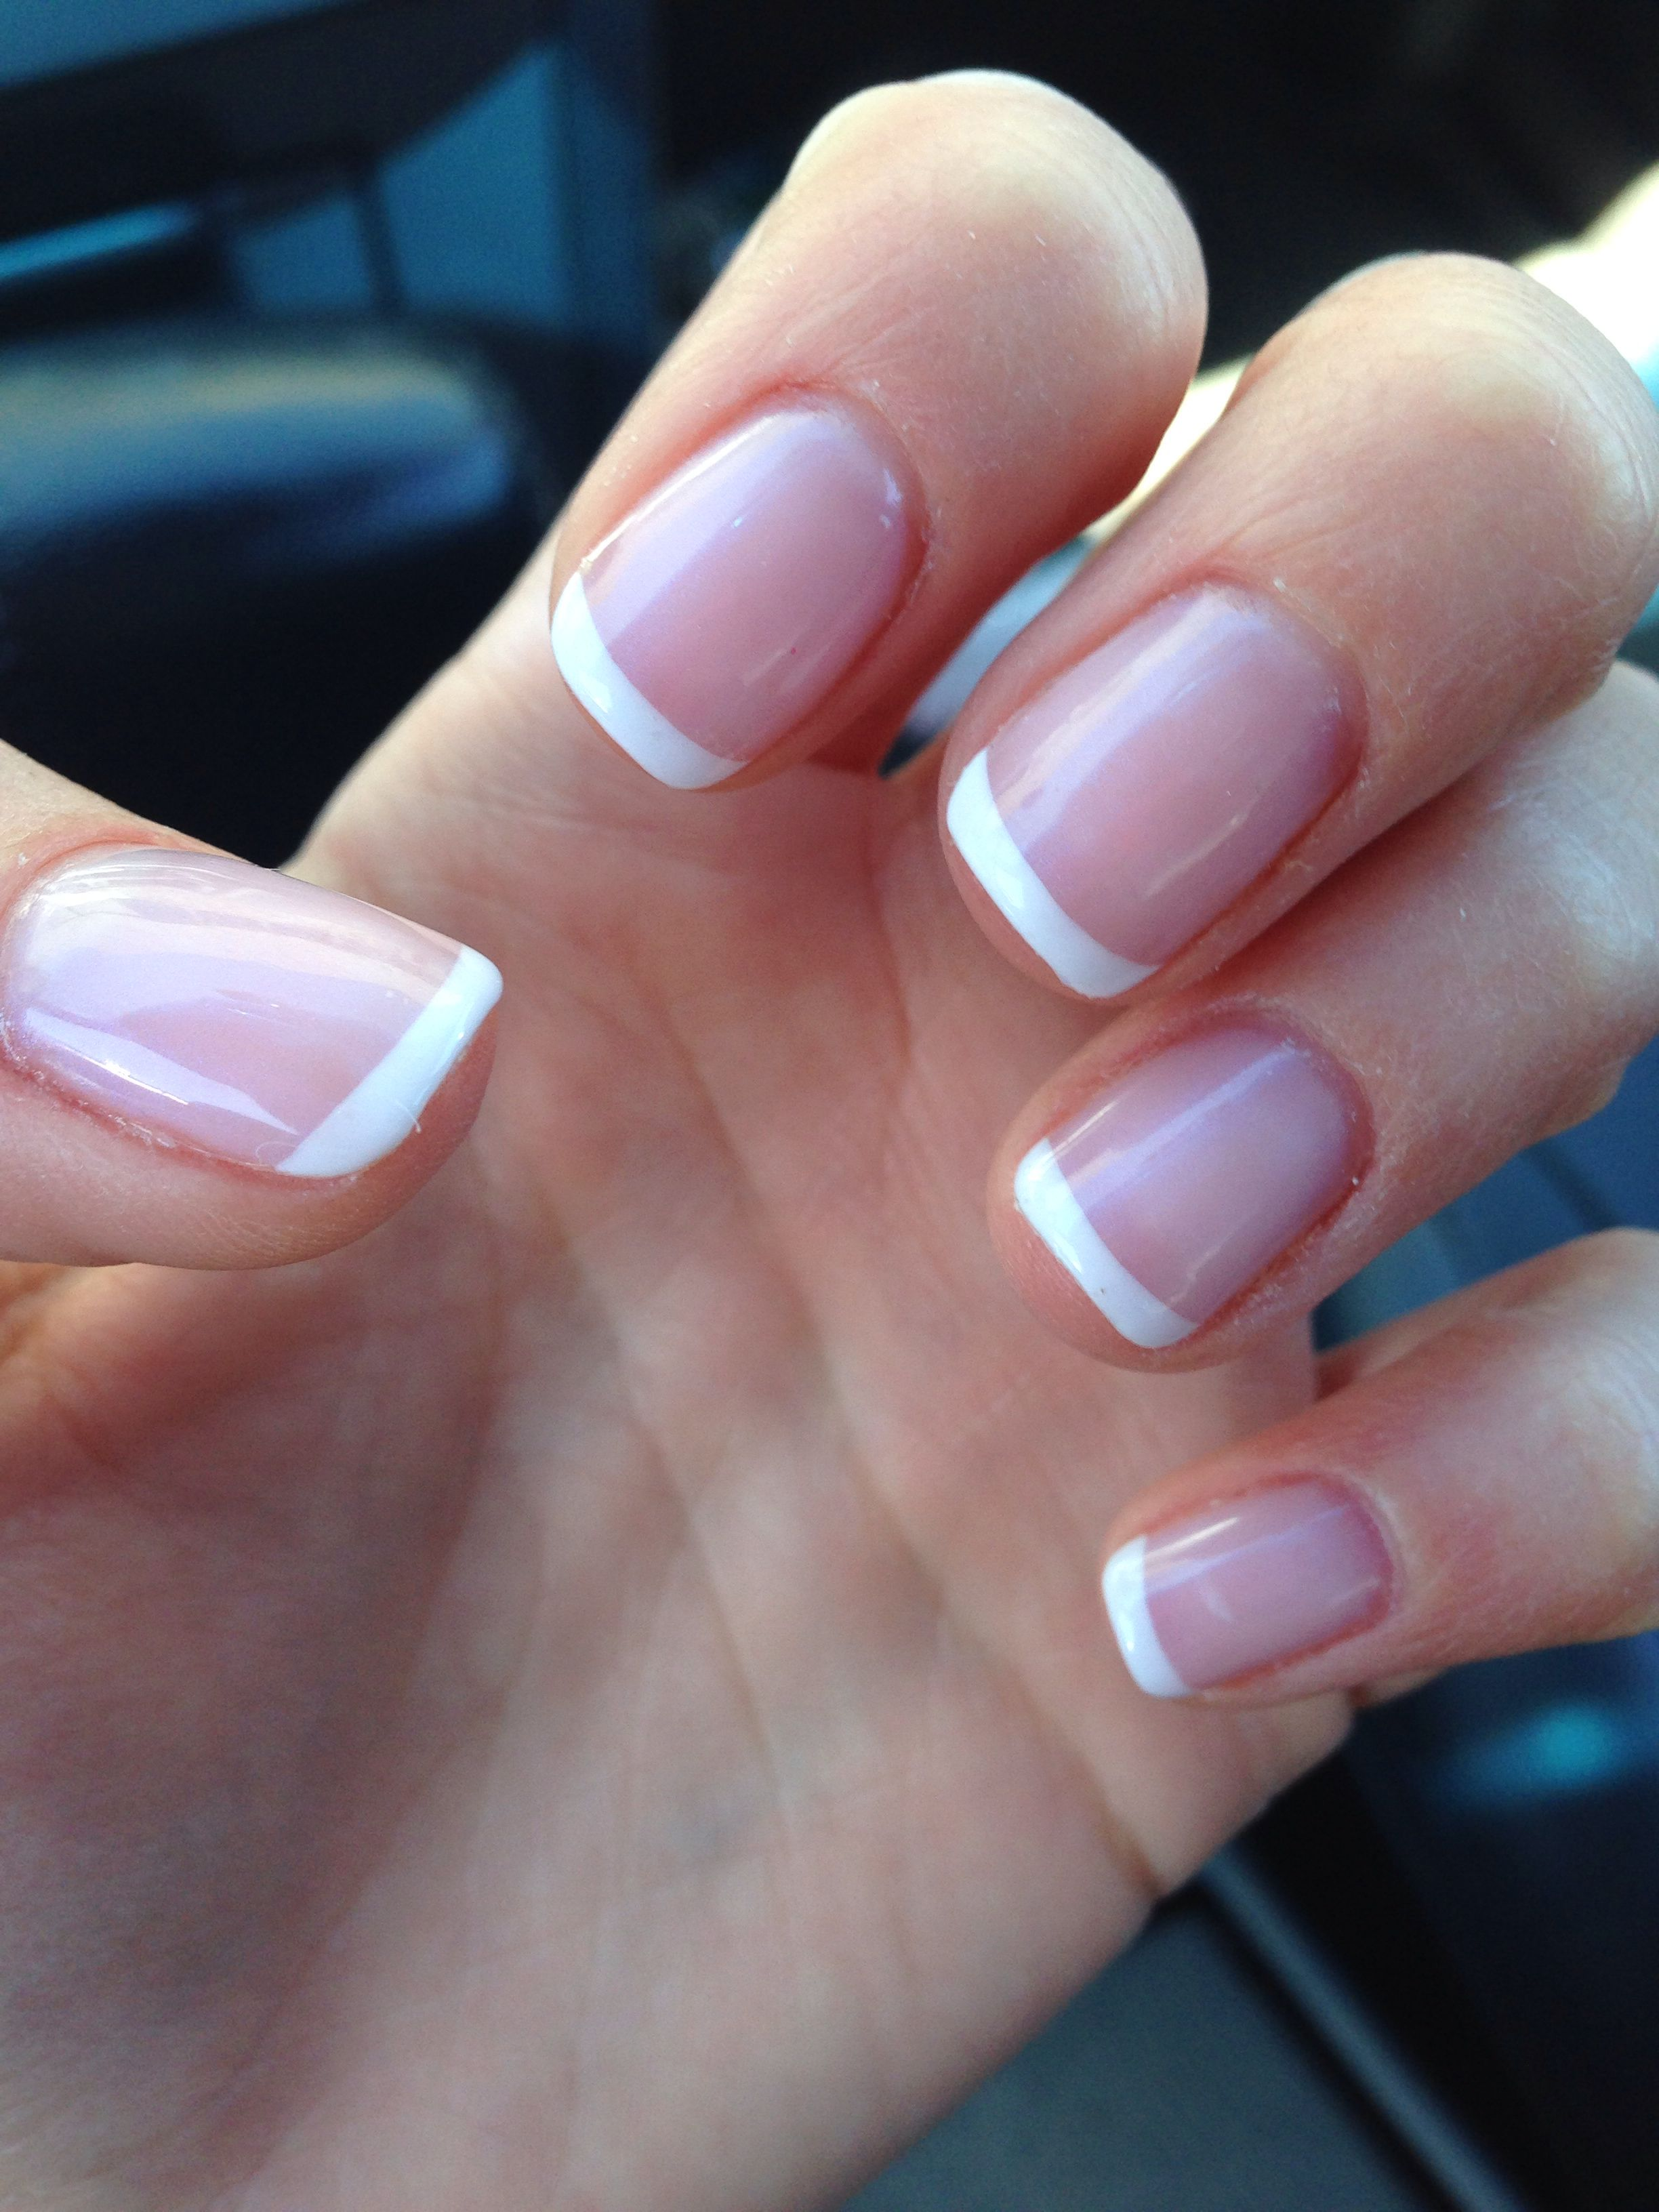 gel french manicure nail ideas